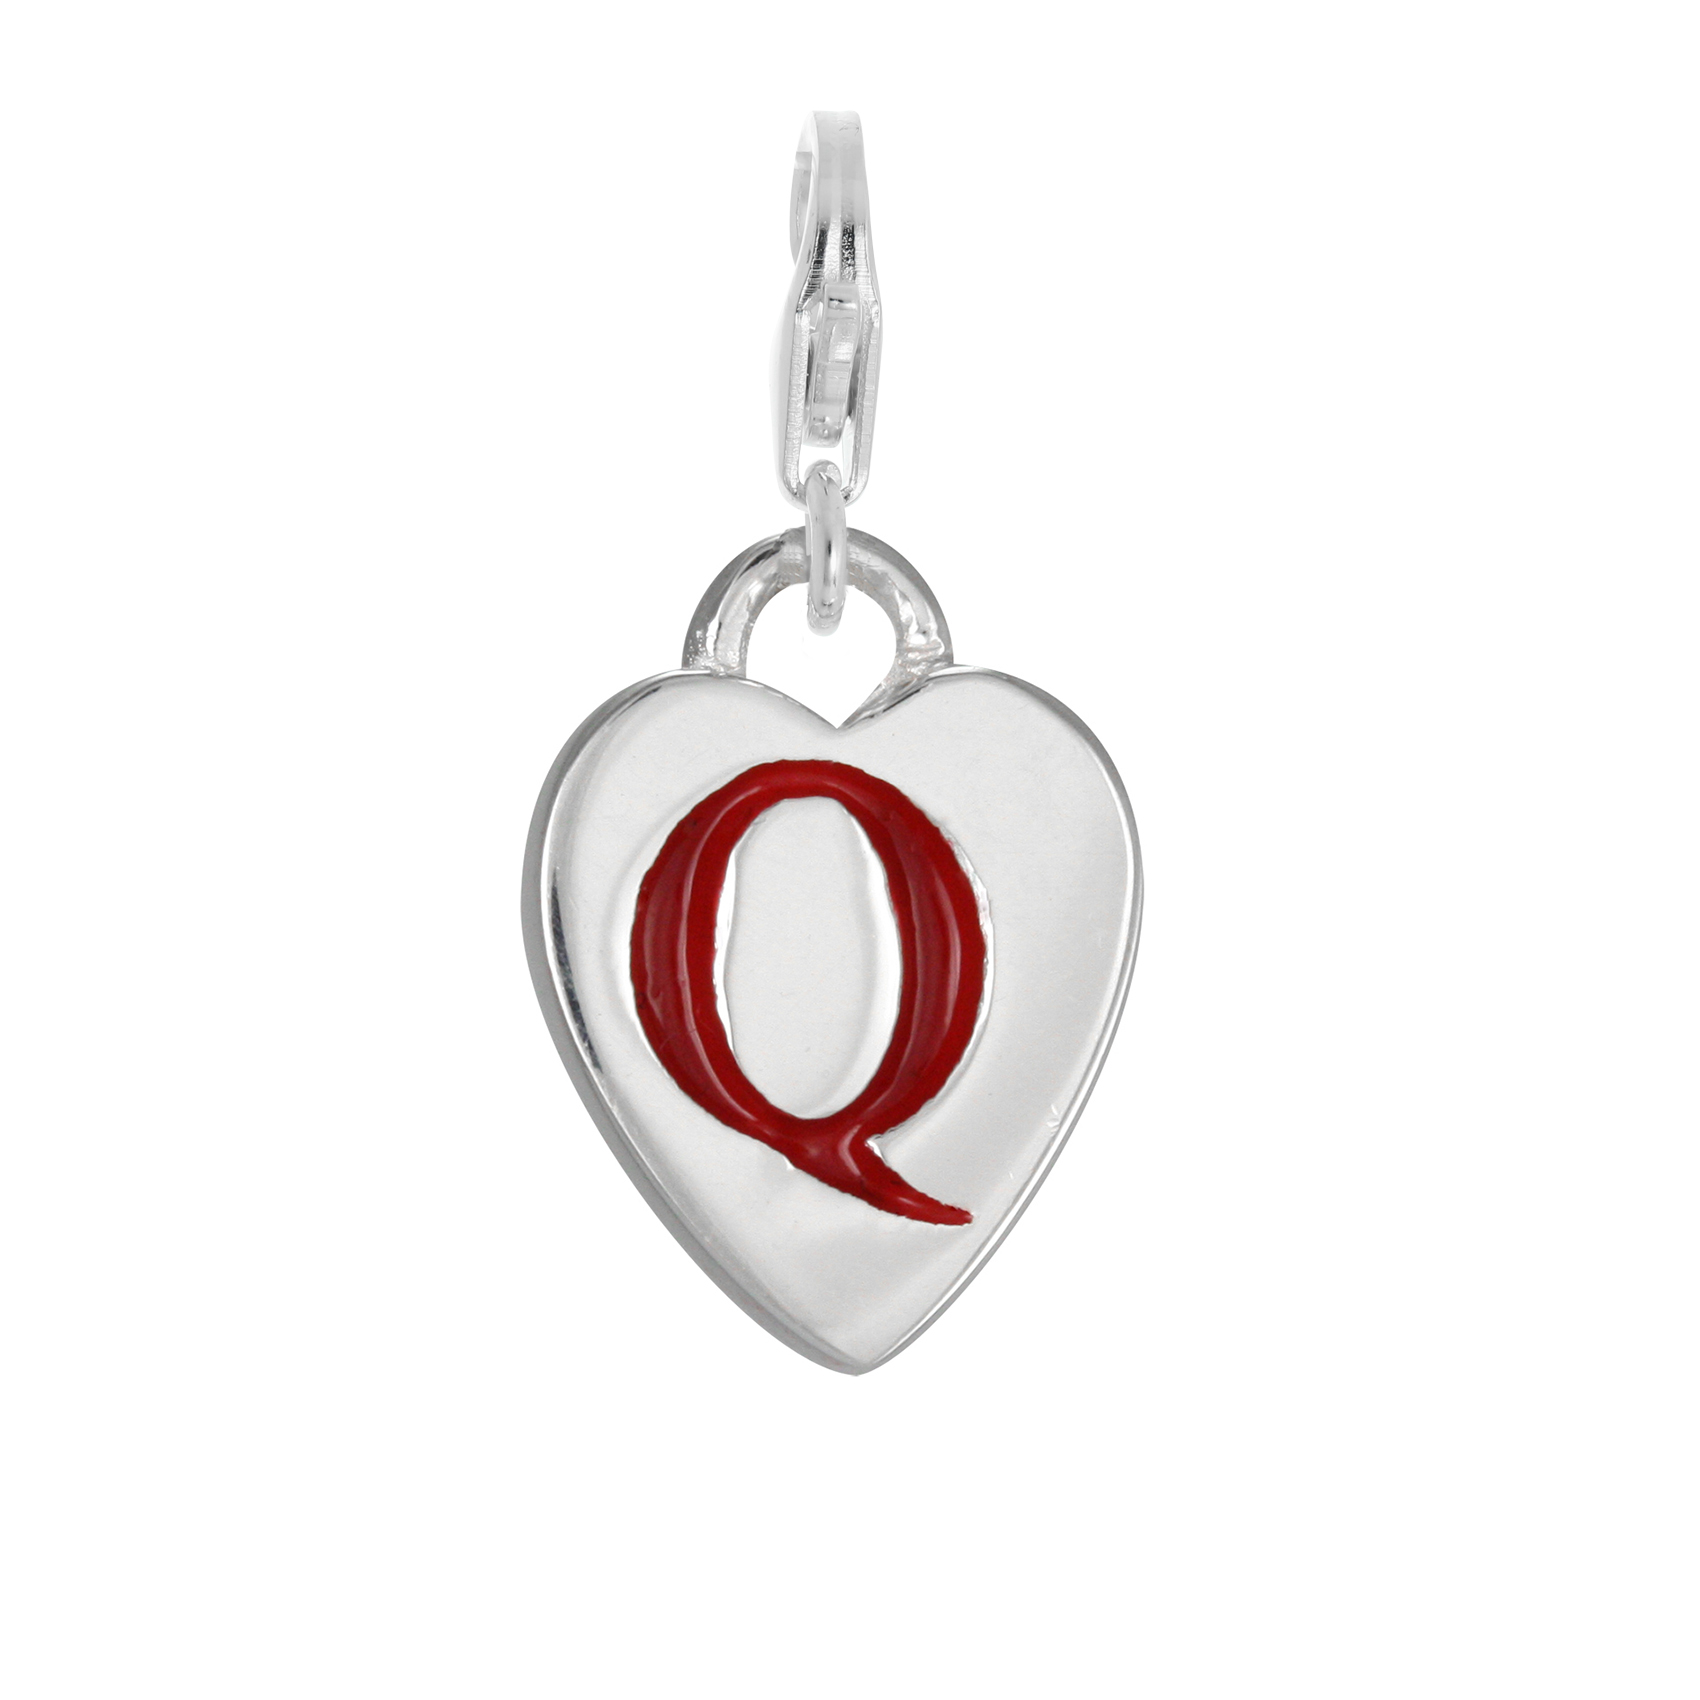 An image of Sterling Silver Enamel Heart Alphabet Letter Q Charm on Clip